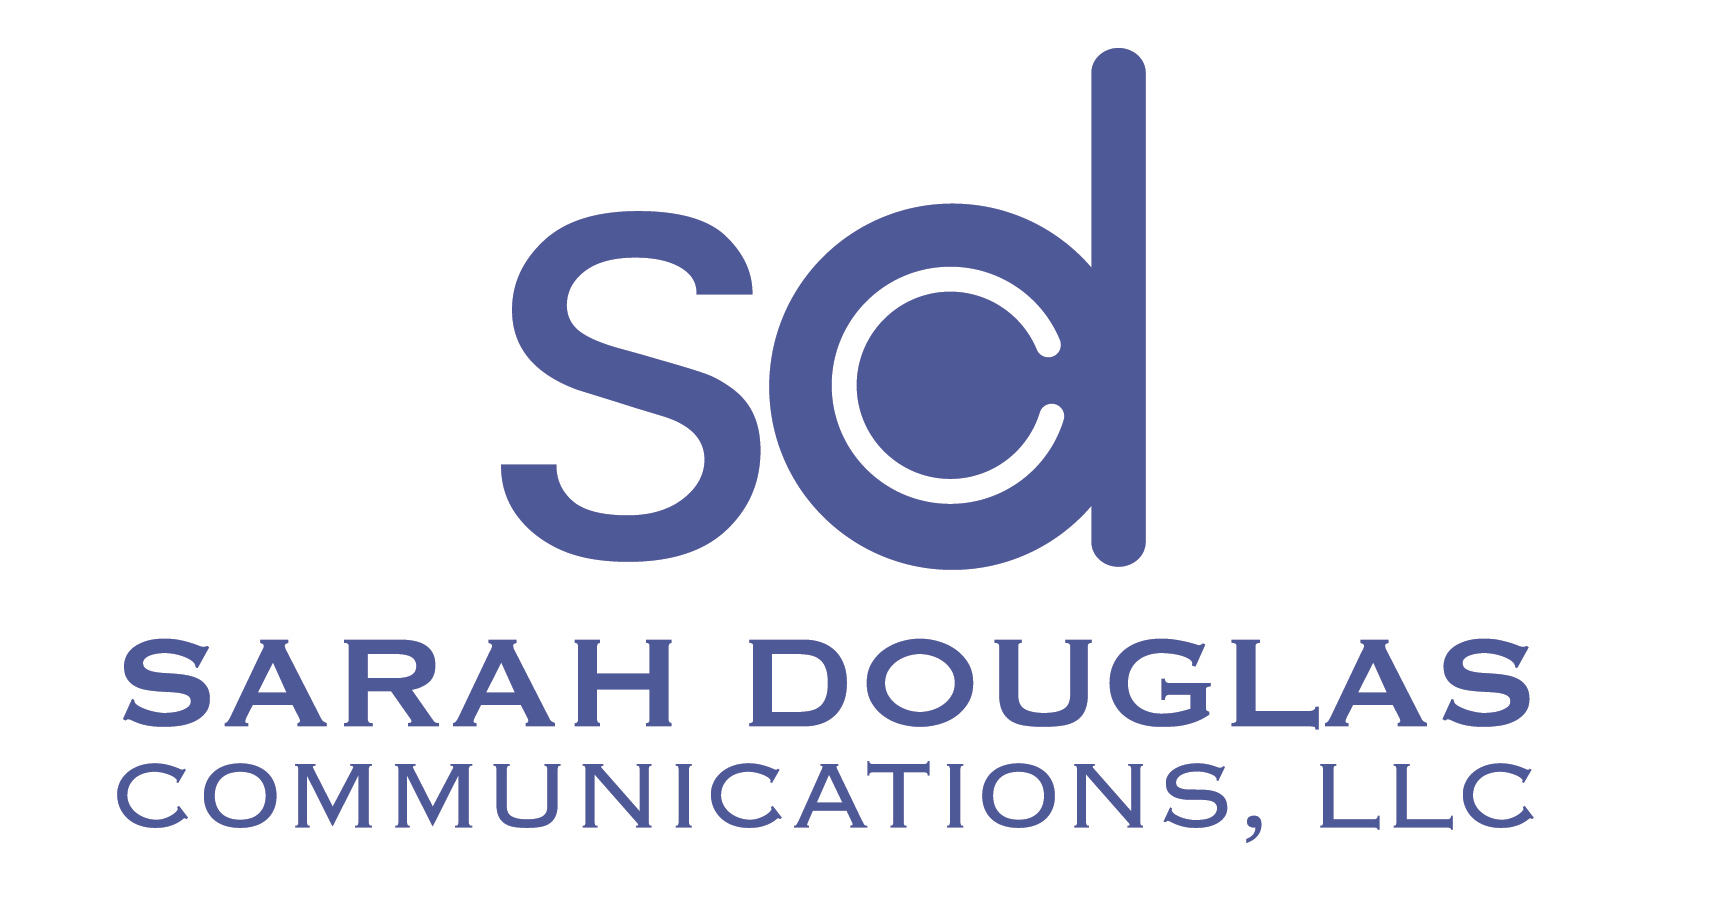 Sarah Douglas Communications